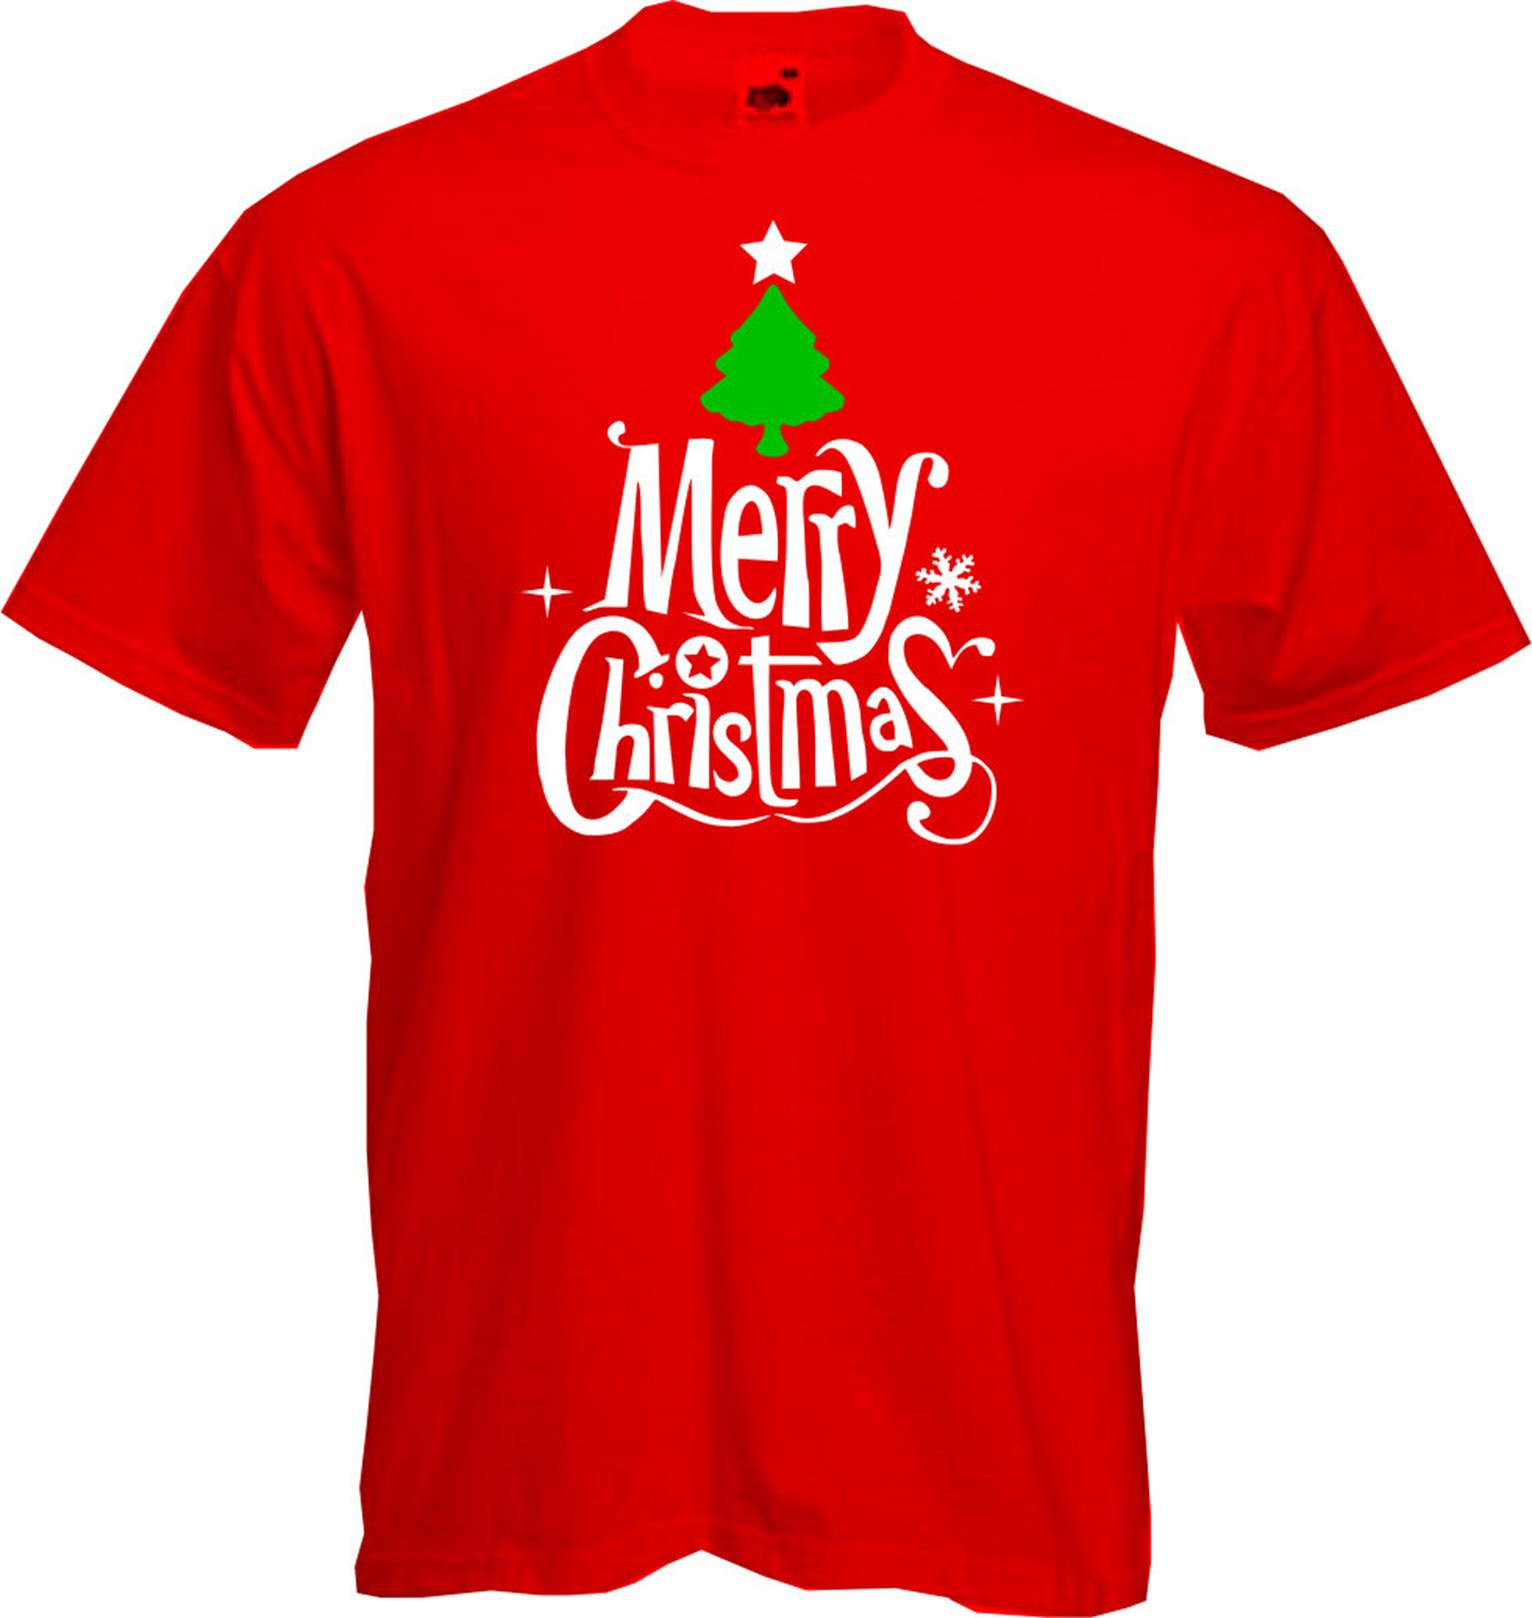 Merry christmas t shirt festive jolly season xmas Merry christmas t shirt design